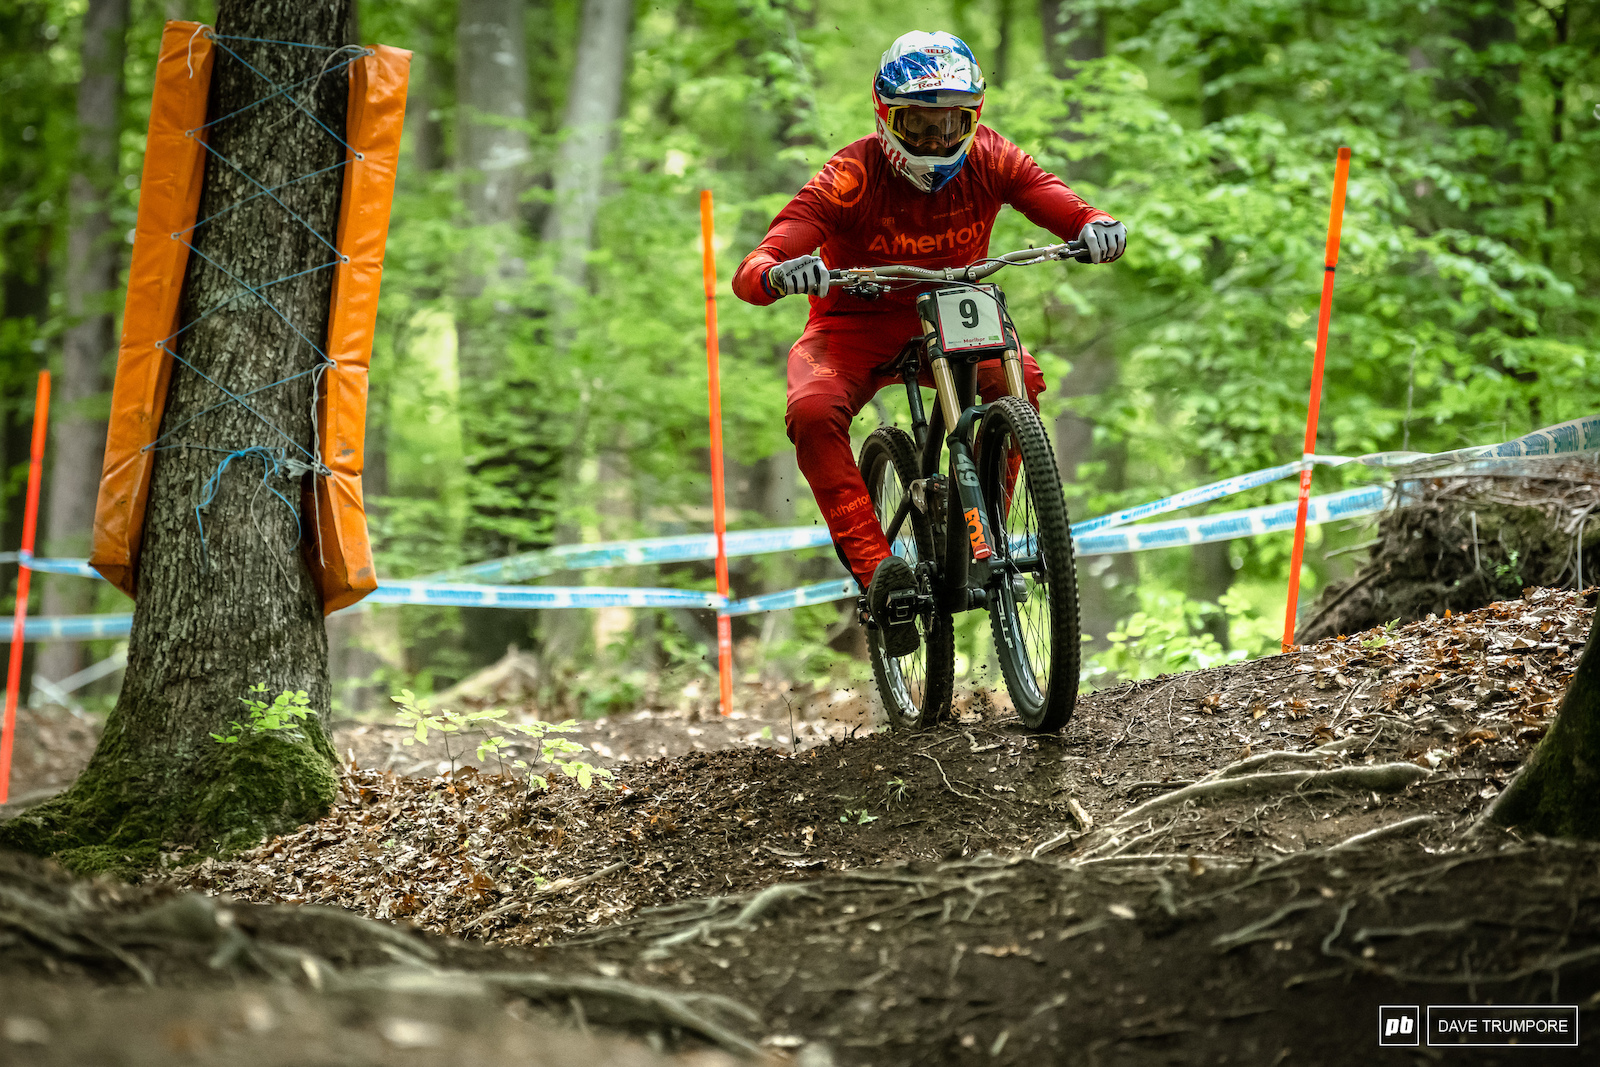 Despite a crash on on of the open turns near the top Gee Atherton was able to make it down in 33rd.